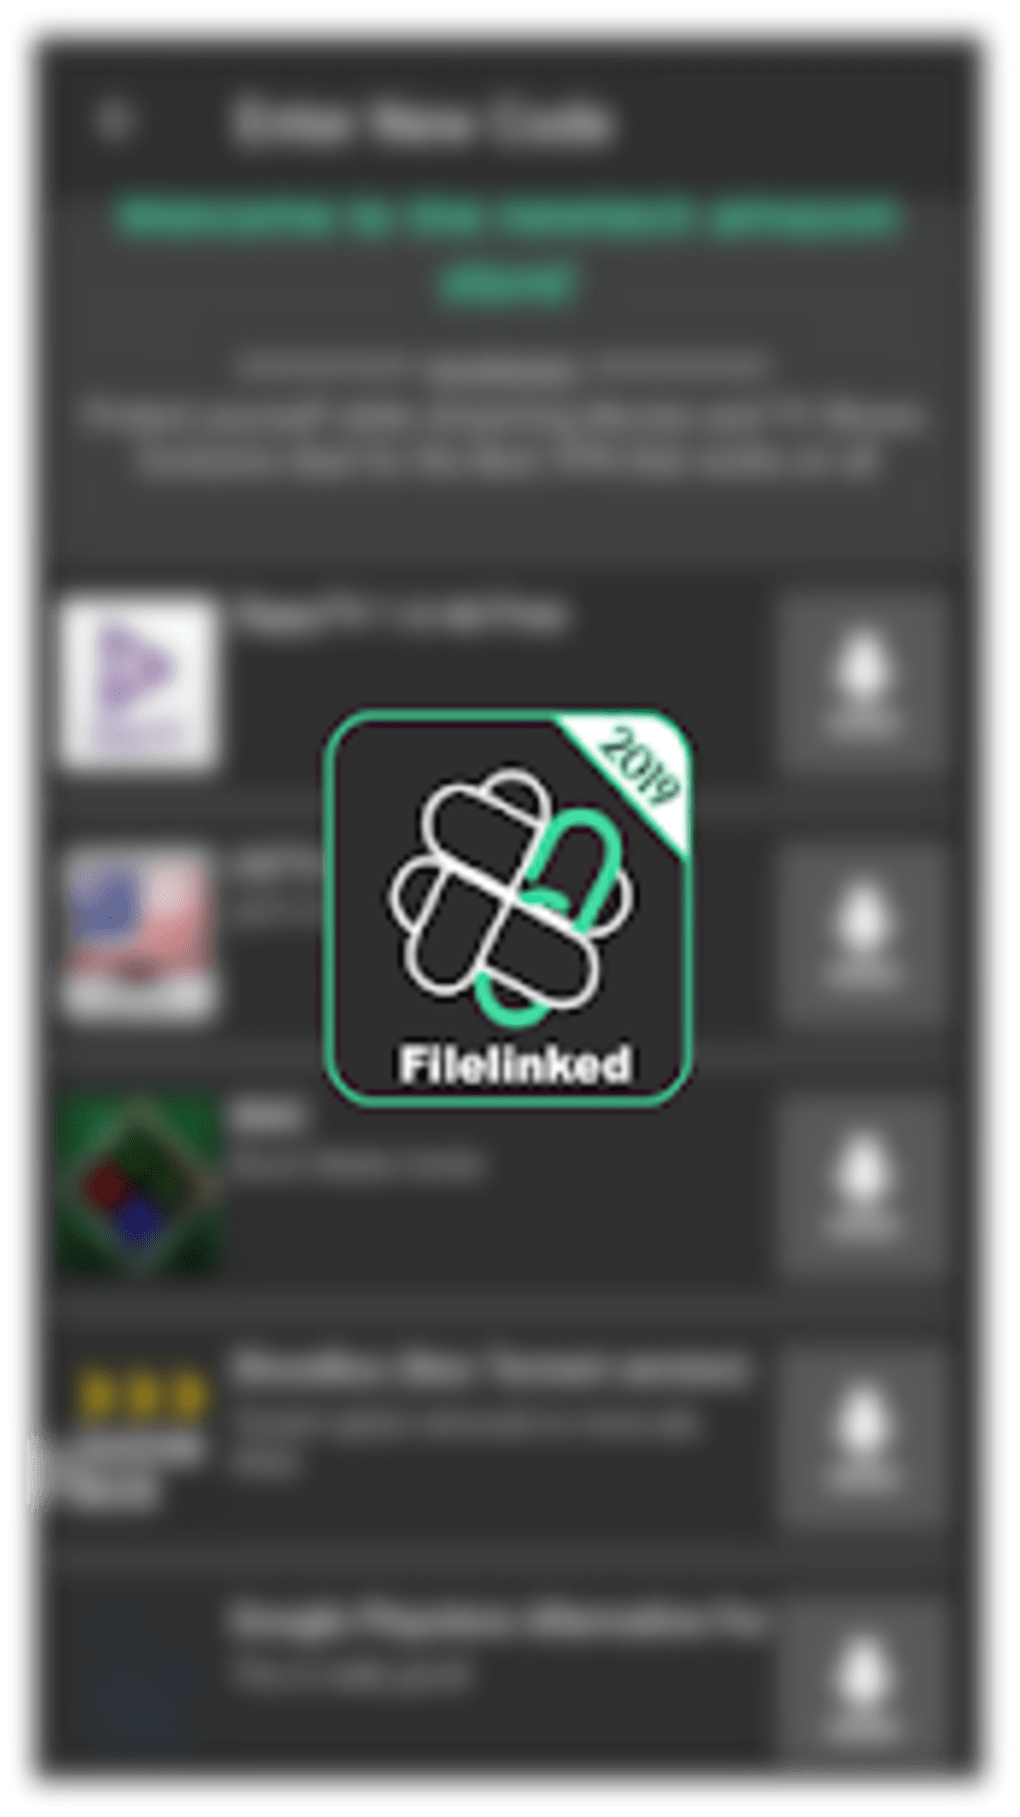 FileLinked Codes Droidadmin 2019 for Android - Download